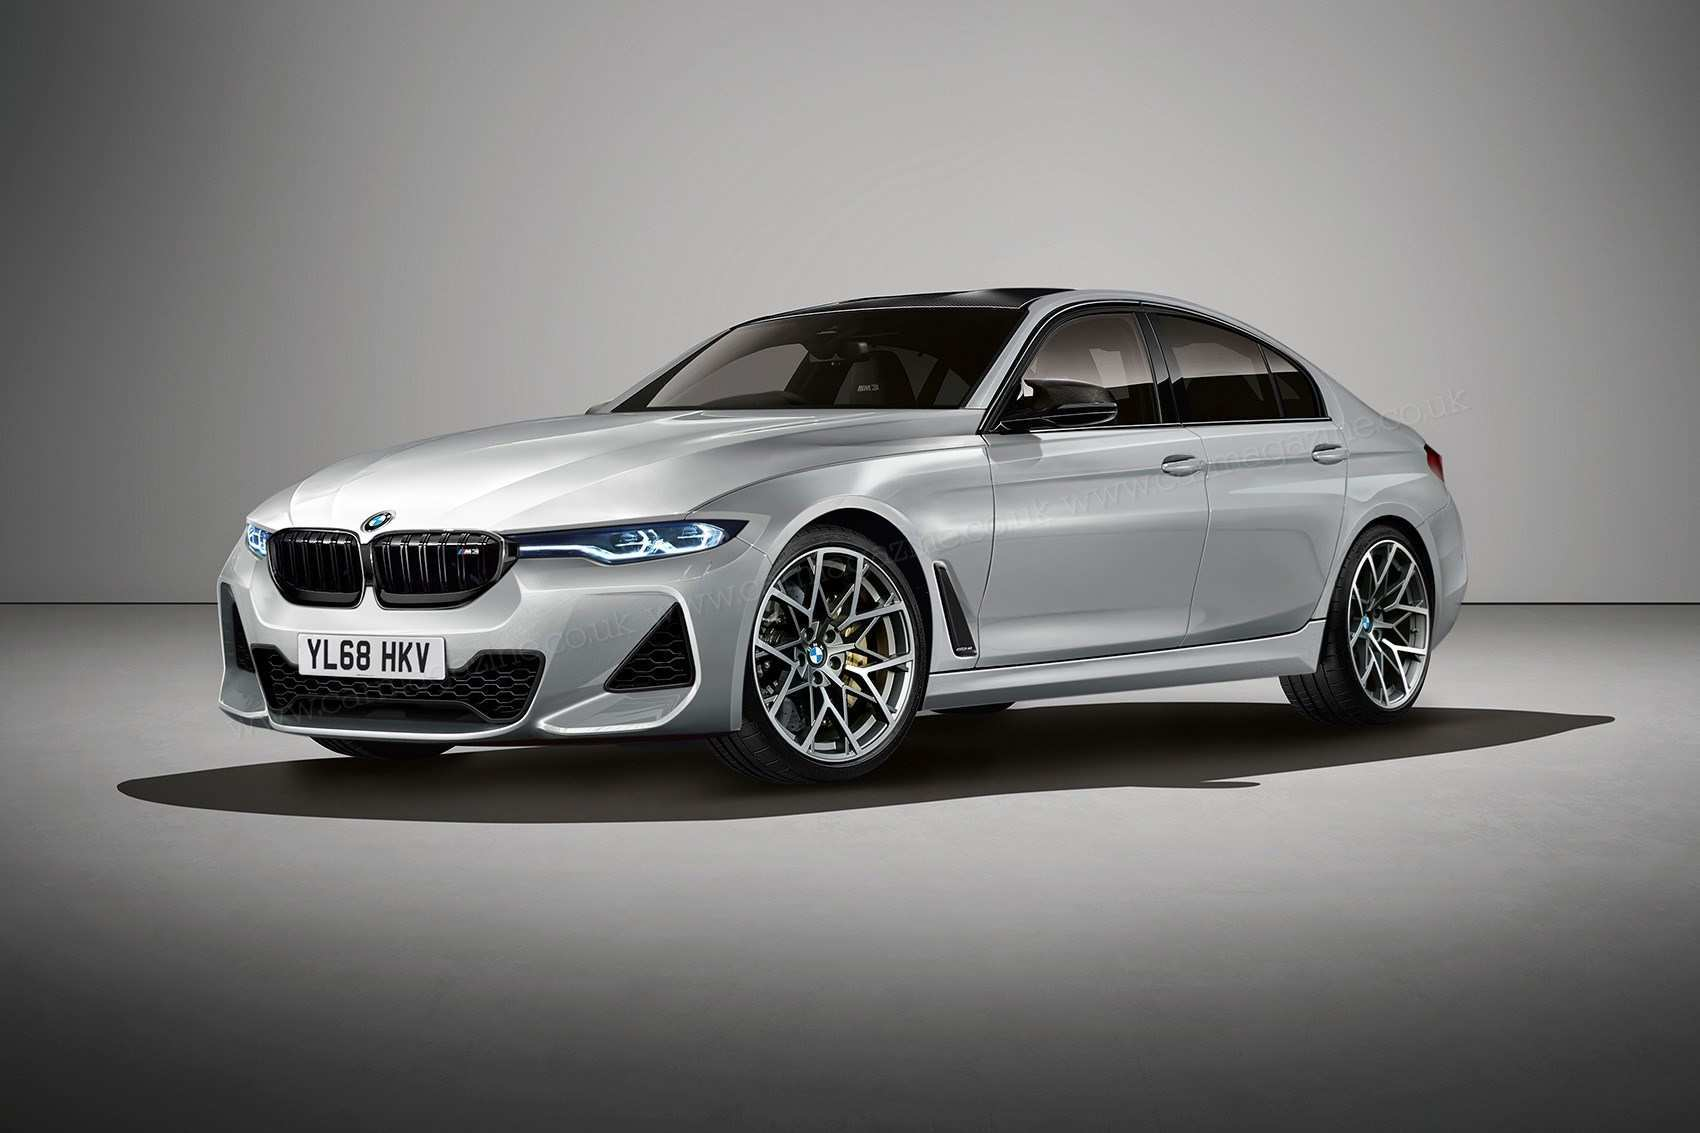 24 Best Review Bmw News 2020 First Drive with Bmw News 2020